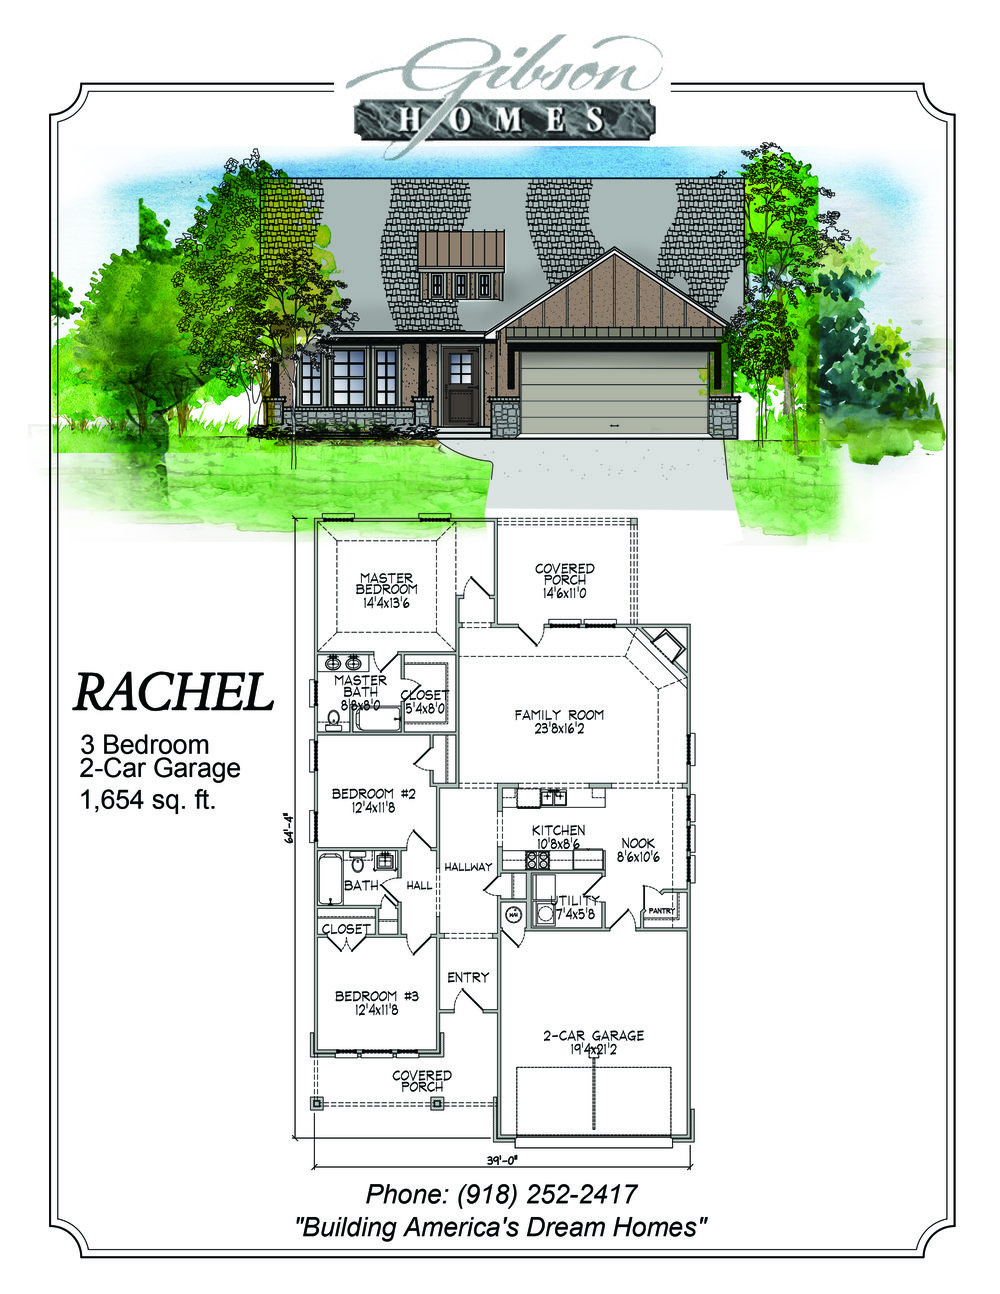 RACHEL - 1688 Sq. Feet3 bedrooms2 bathrooms2 car garageBase Price $160,000